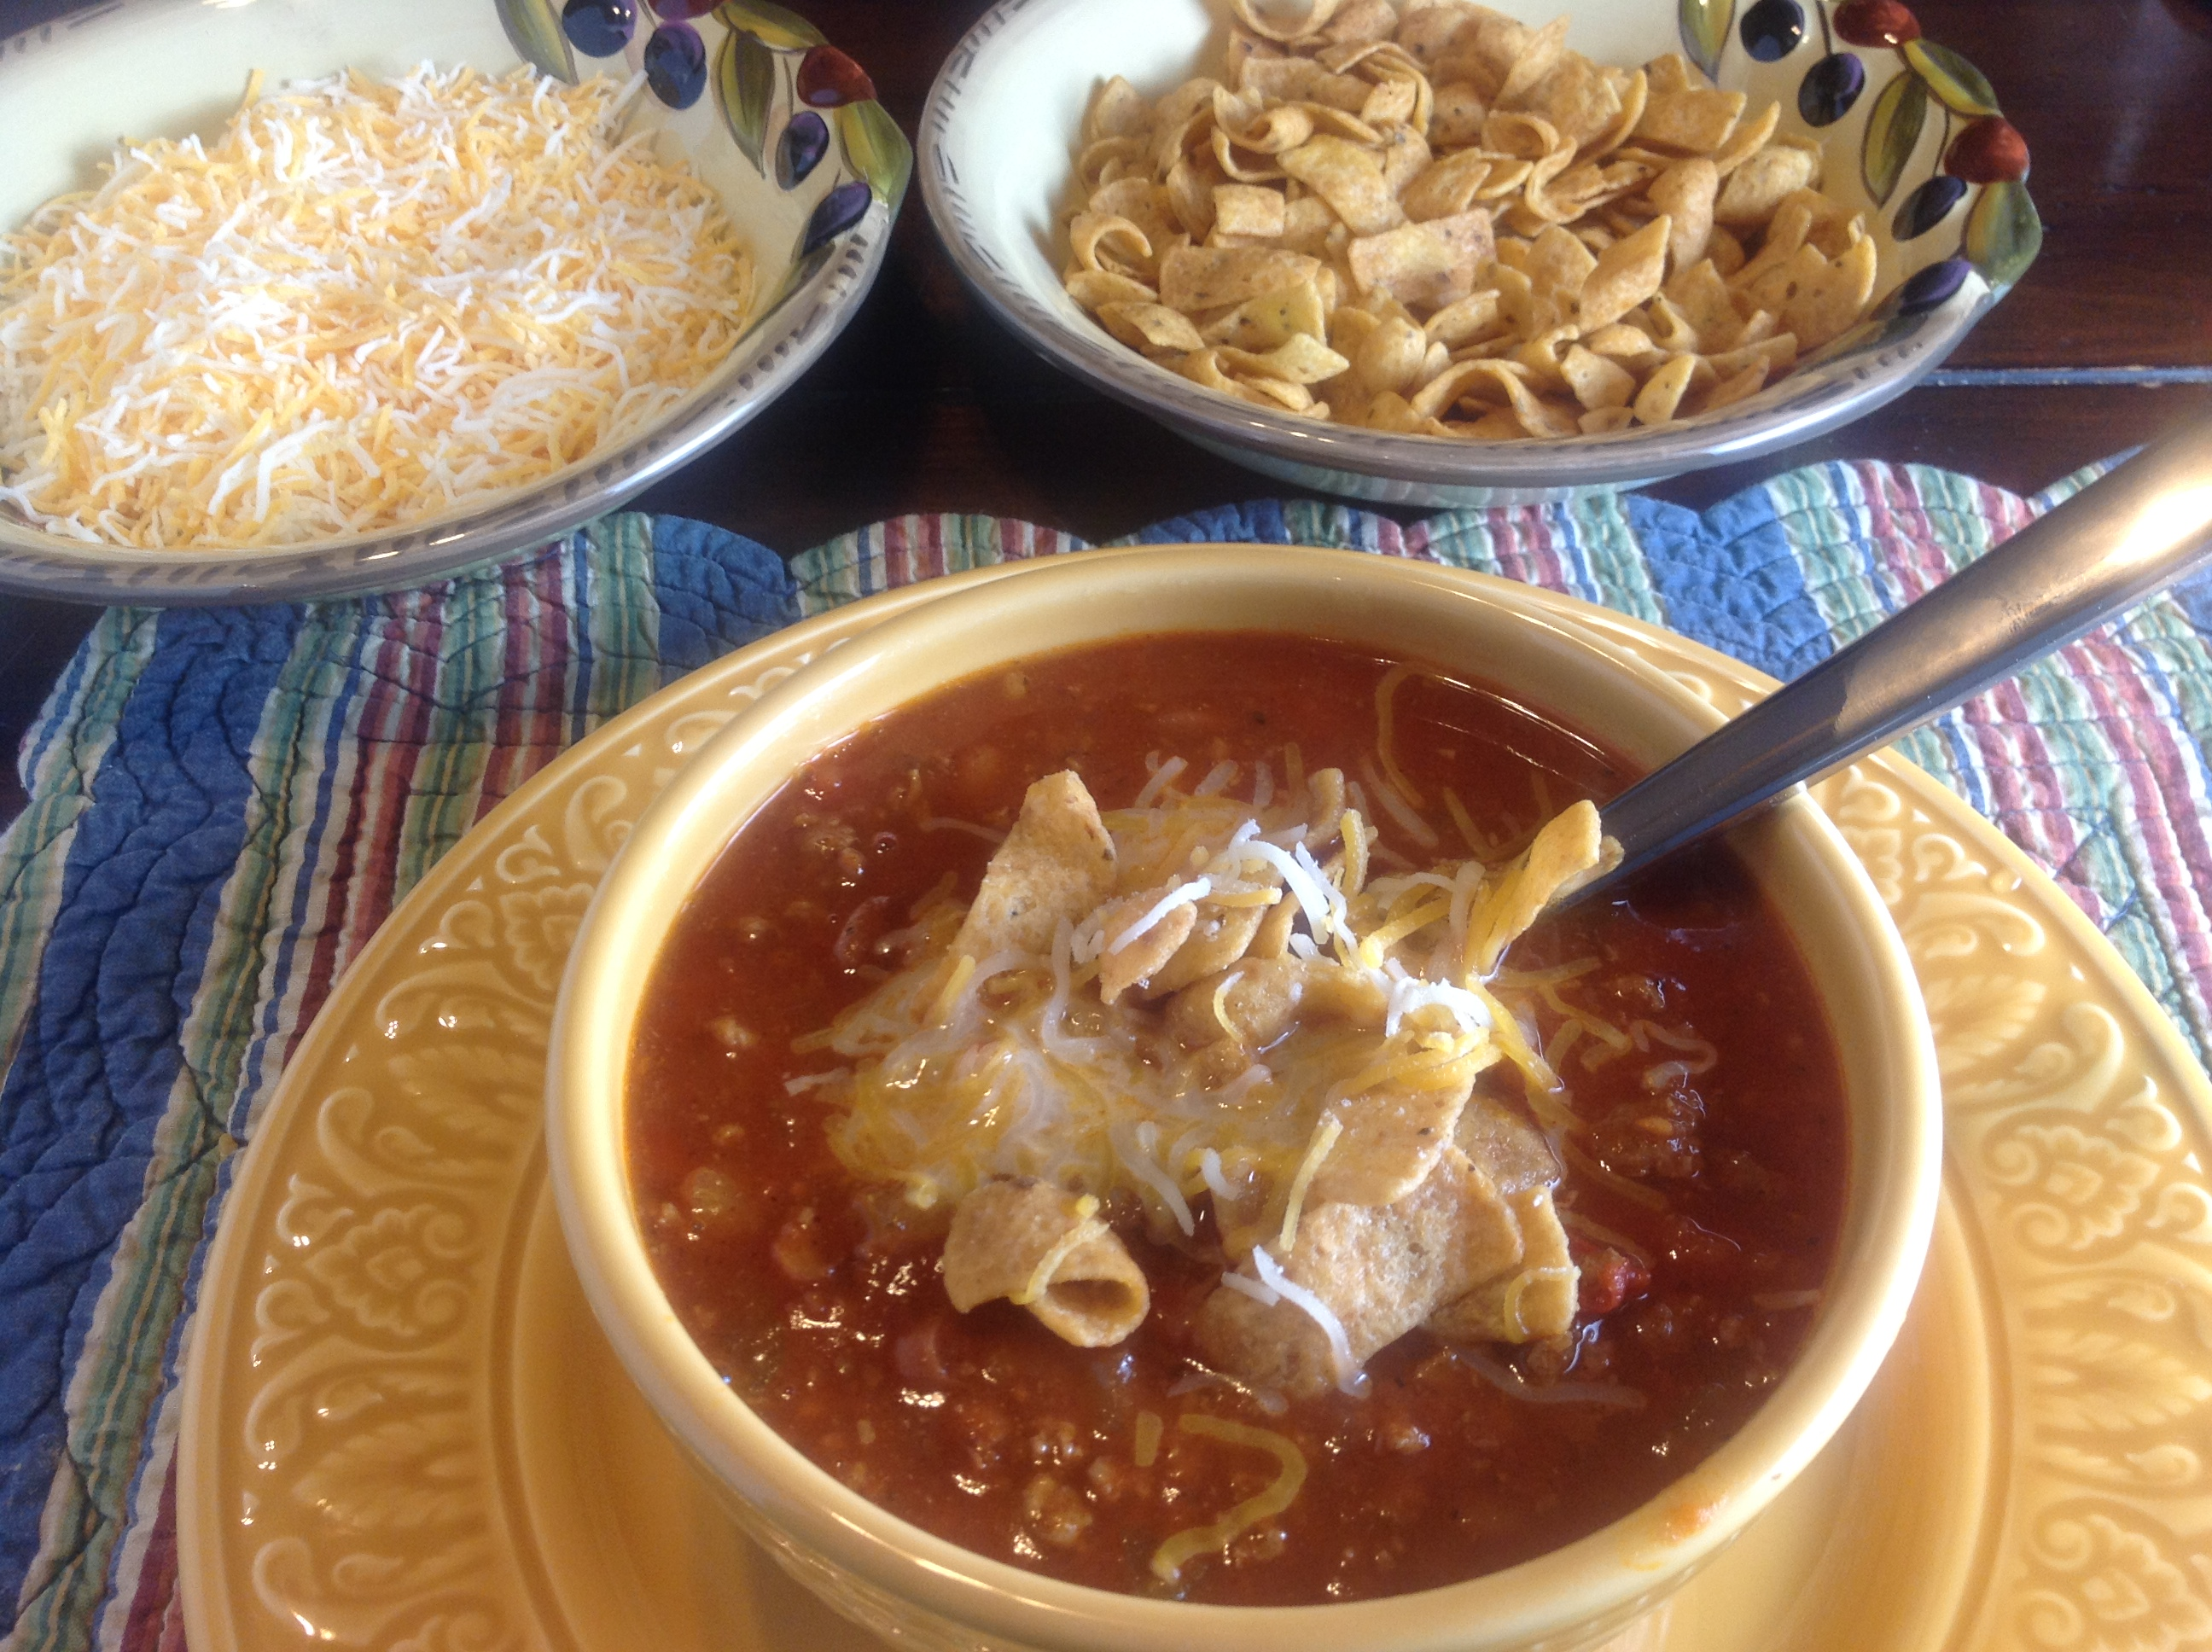 Recipe For Fantstic Cafe Chili